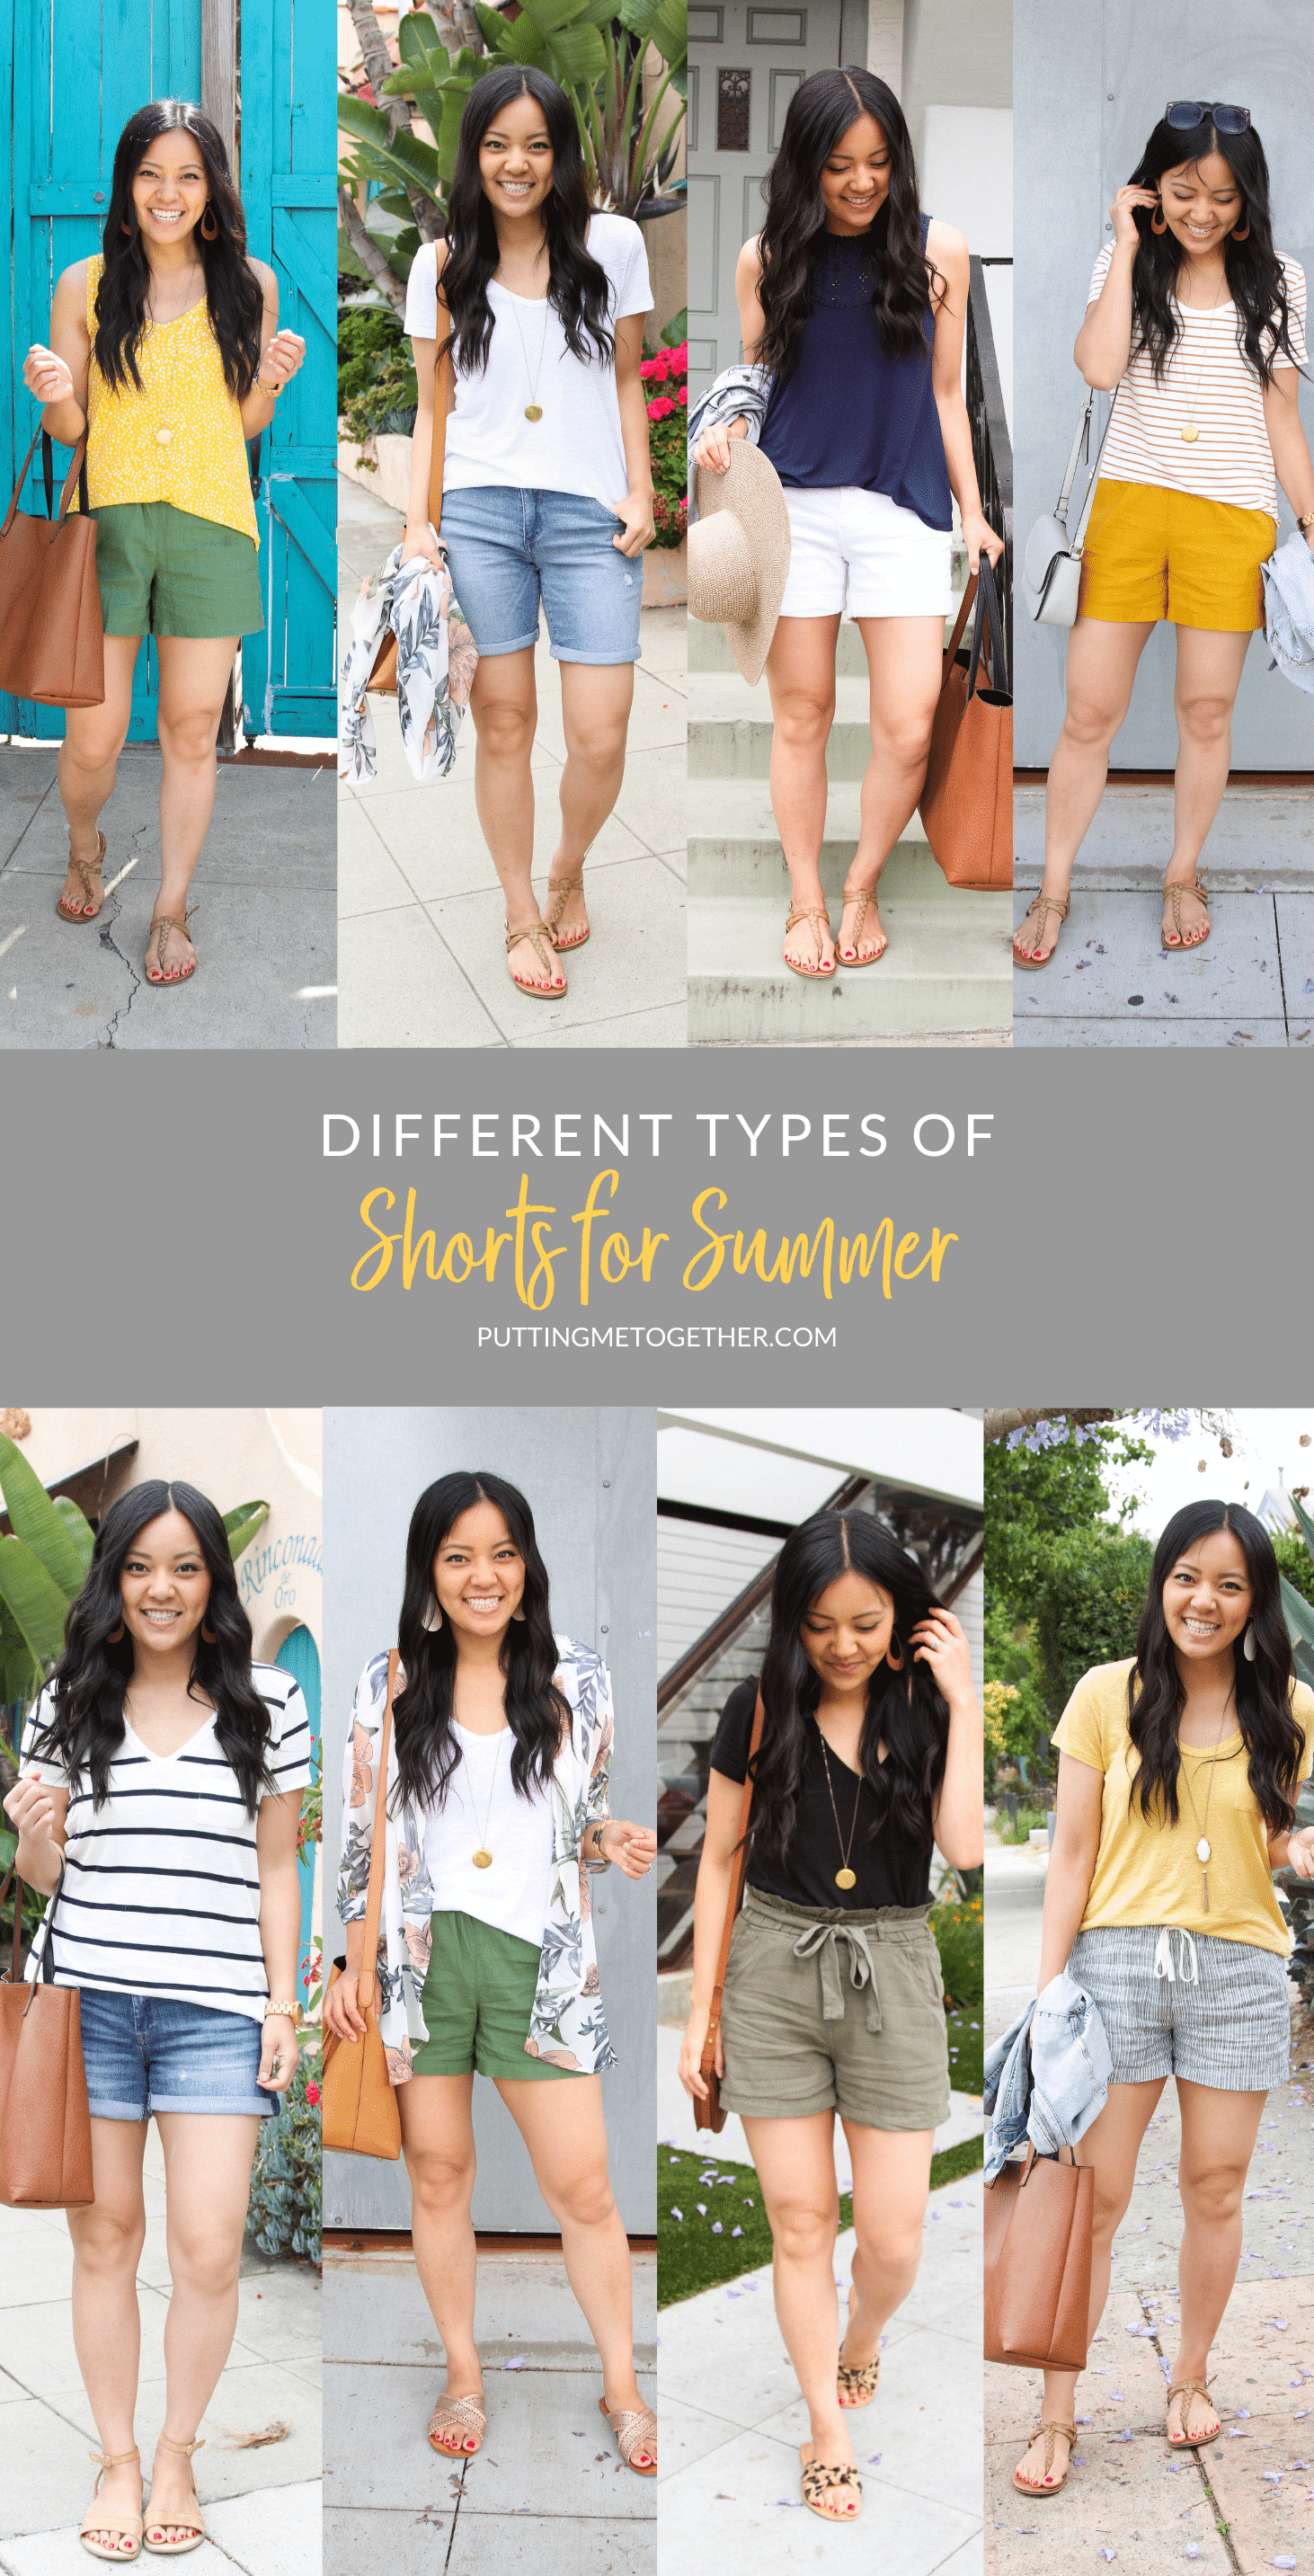 5 Types Of Casual Shorts For Summer